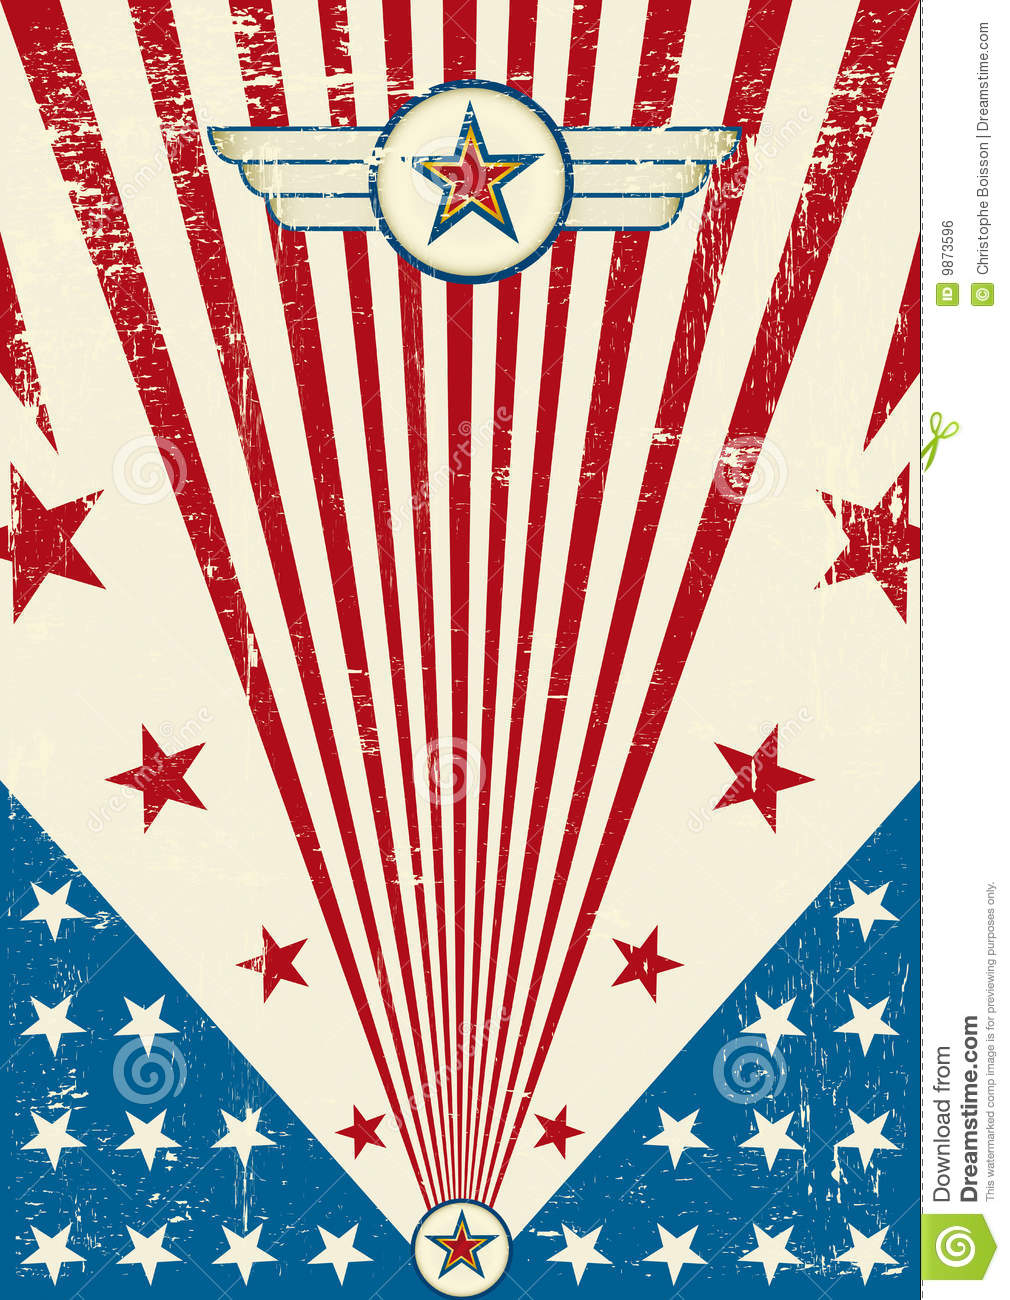 Free Scratch Cards >> Patriotic Scratch Poster Royalty Free Stock Image - Image: 9873596